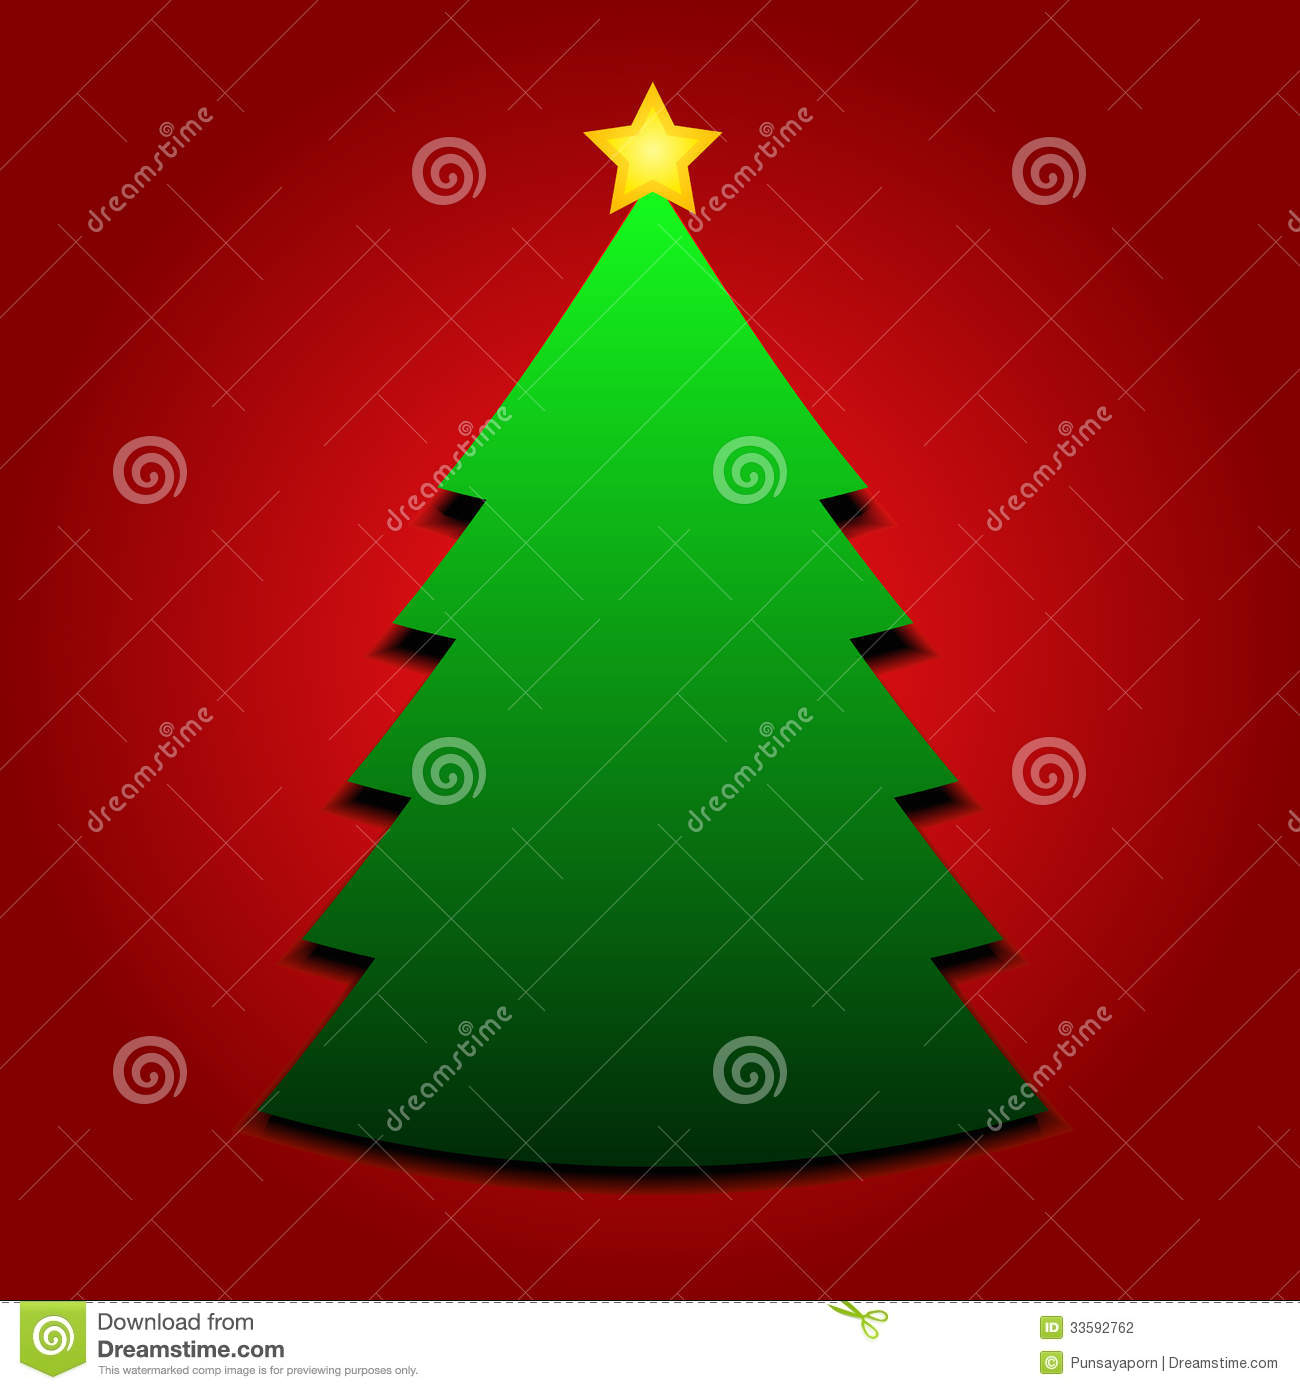 Christmas tree with yellow star stock vector image 33592762 for Red and yellow christmas tree